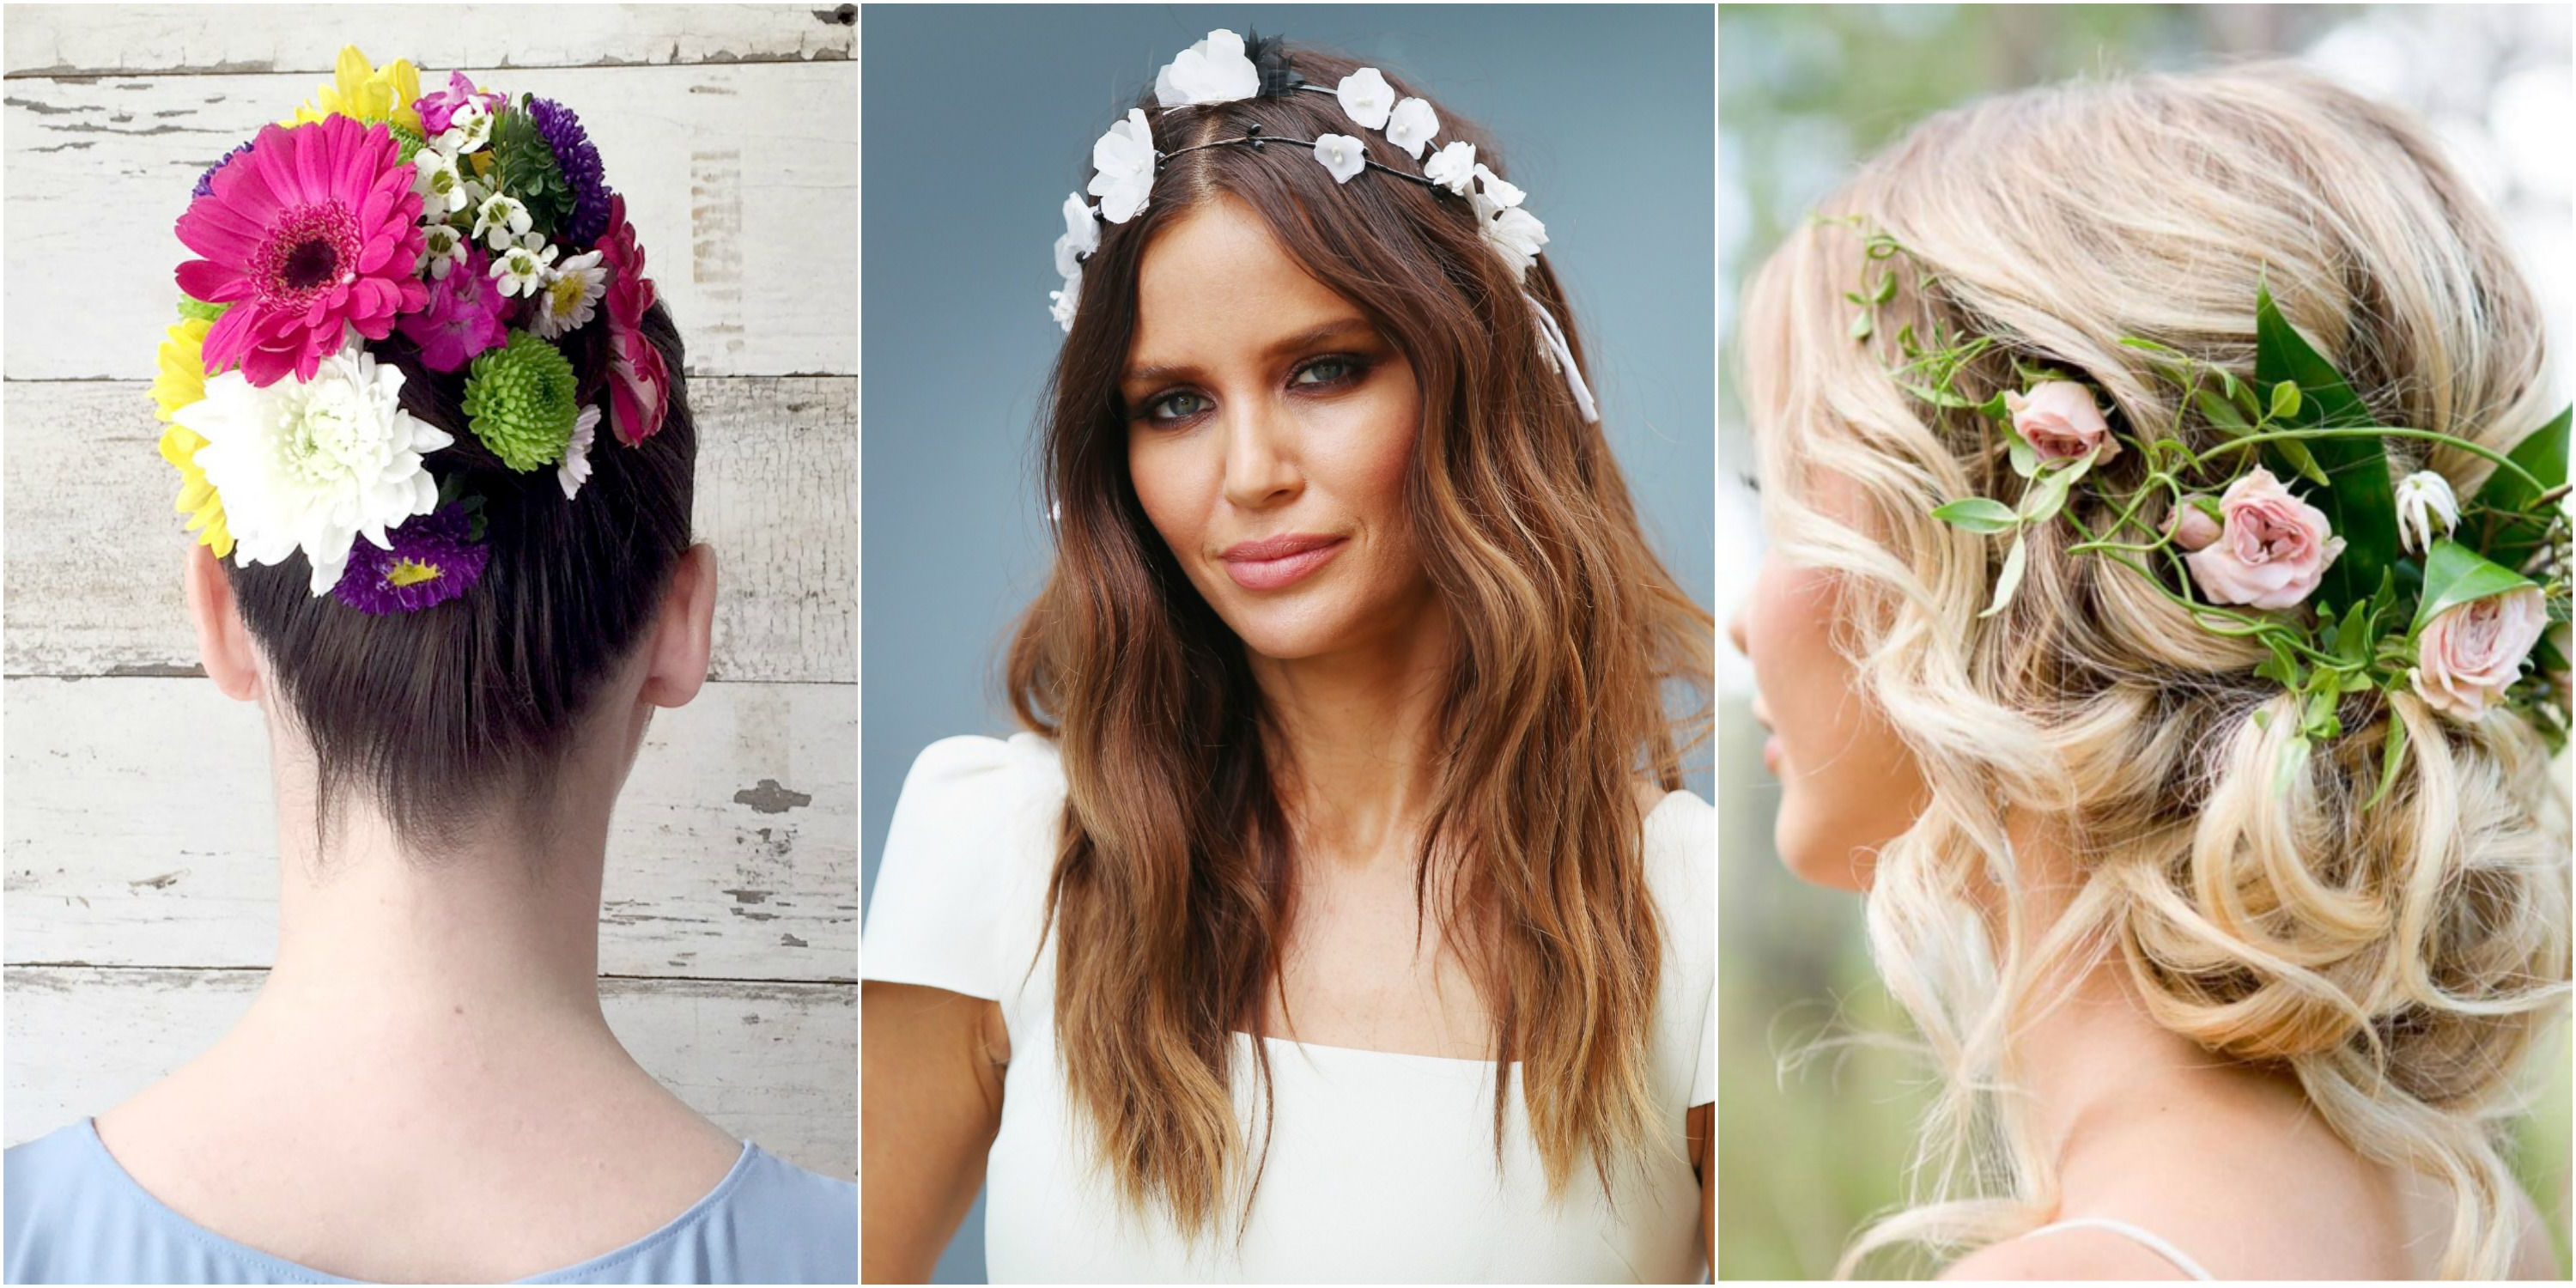 12 Pretty Flower Crowns And Floral Hairstyles — Flower Hairstyles Within Well Known Double Braid Bridal Hairstyles With Fresh Flowers (View 12 of 20)